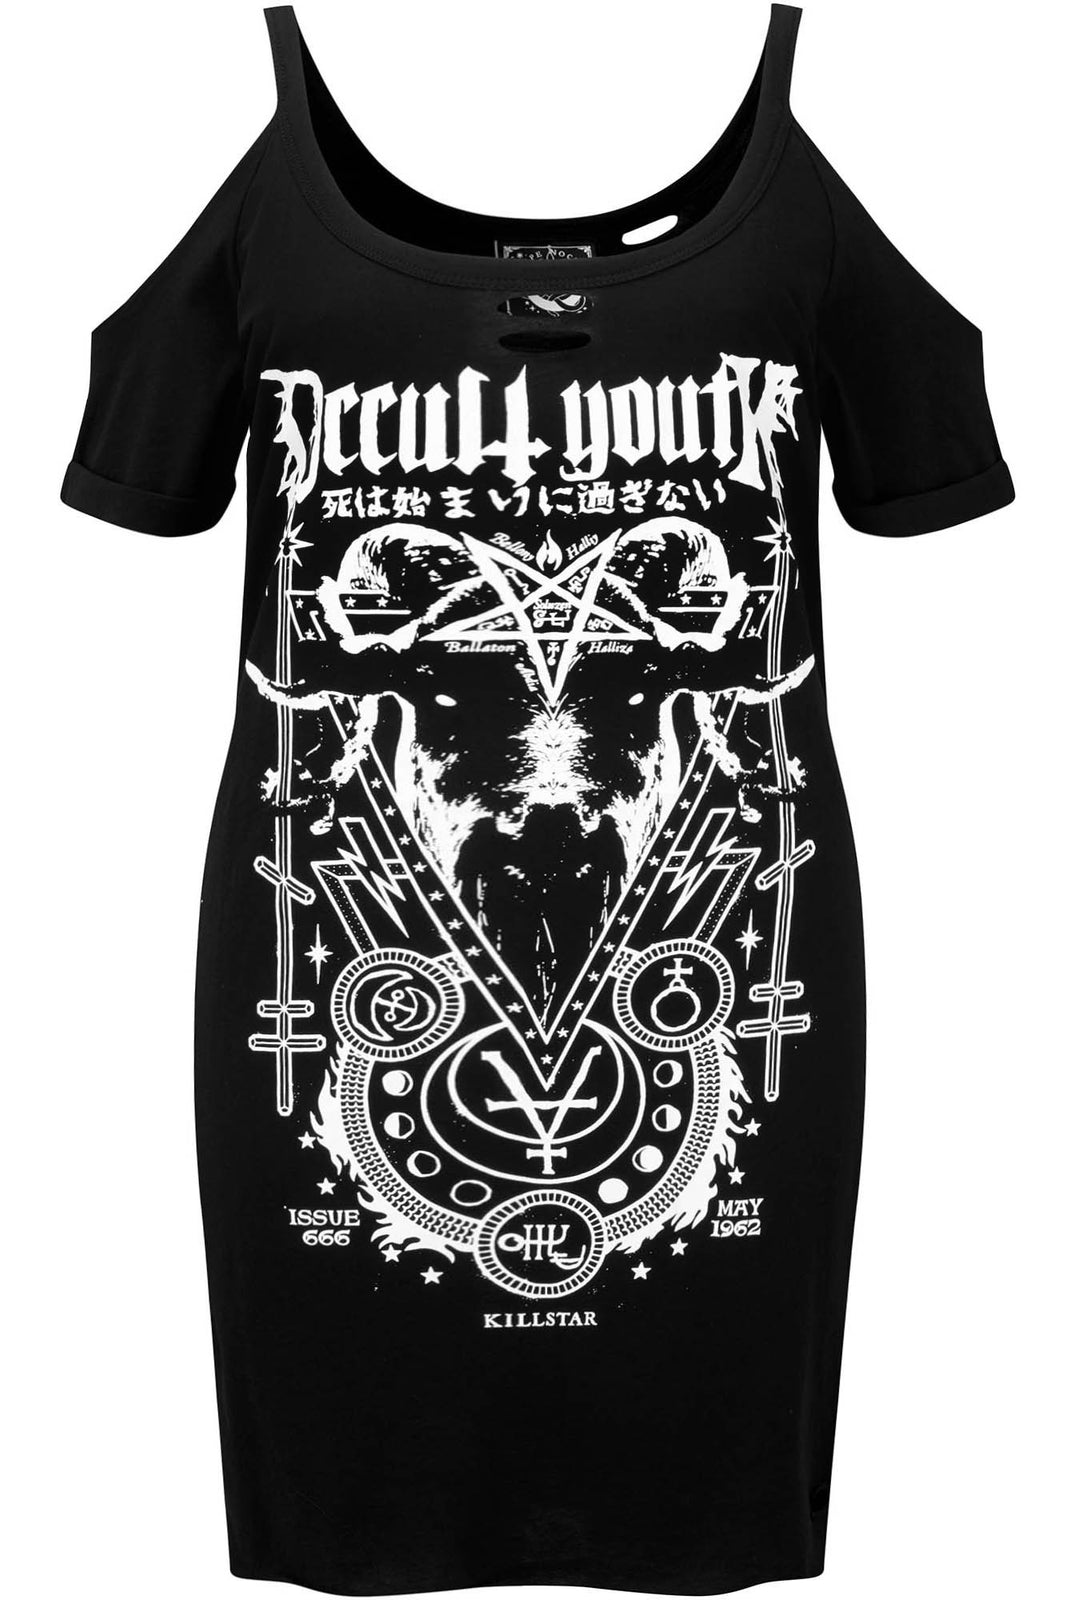 Occult Youth Distress Top [PLUS]